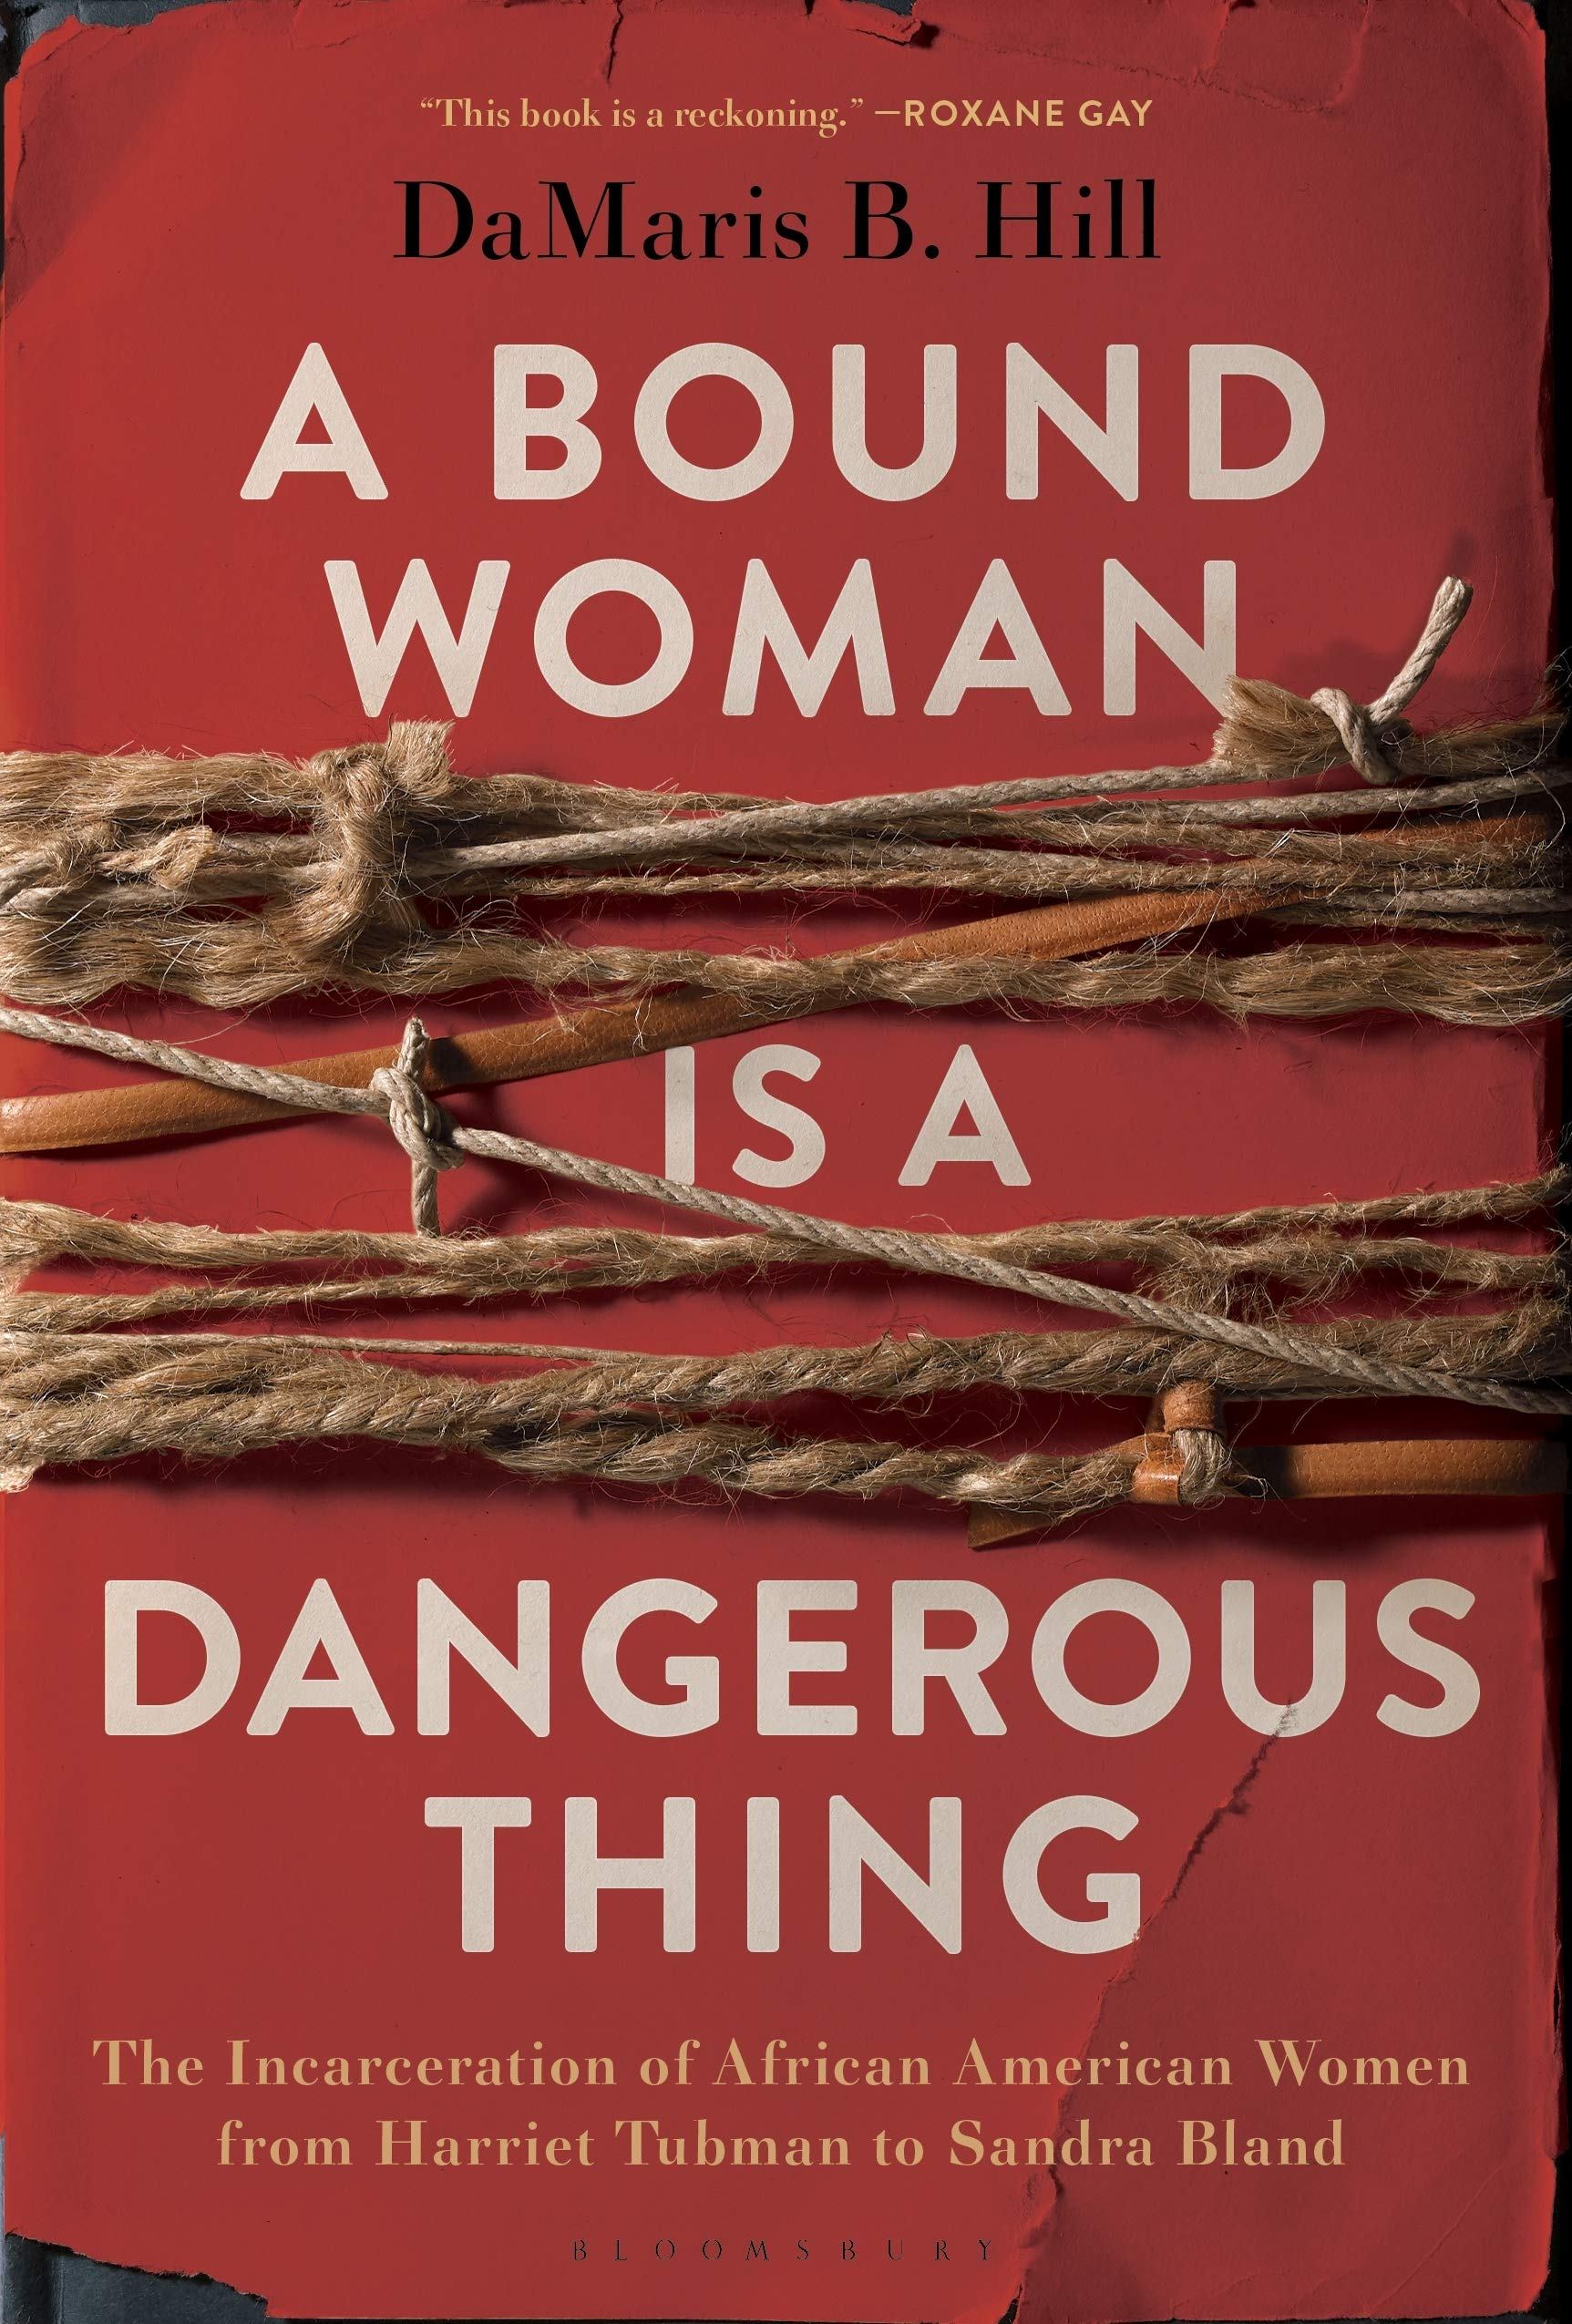 A Bound Woman Is a Dangerous Thing: The Incarceration of African American Women from Harriet Tubman to Sandra Bland by DaMaris B. Hill